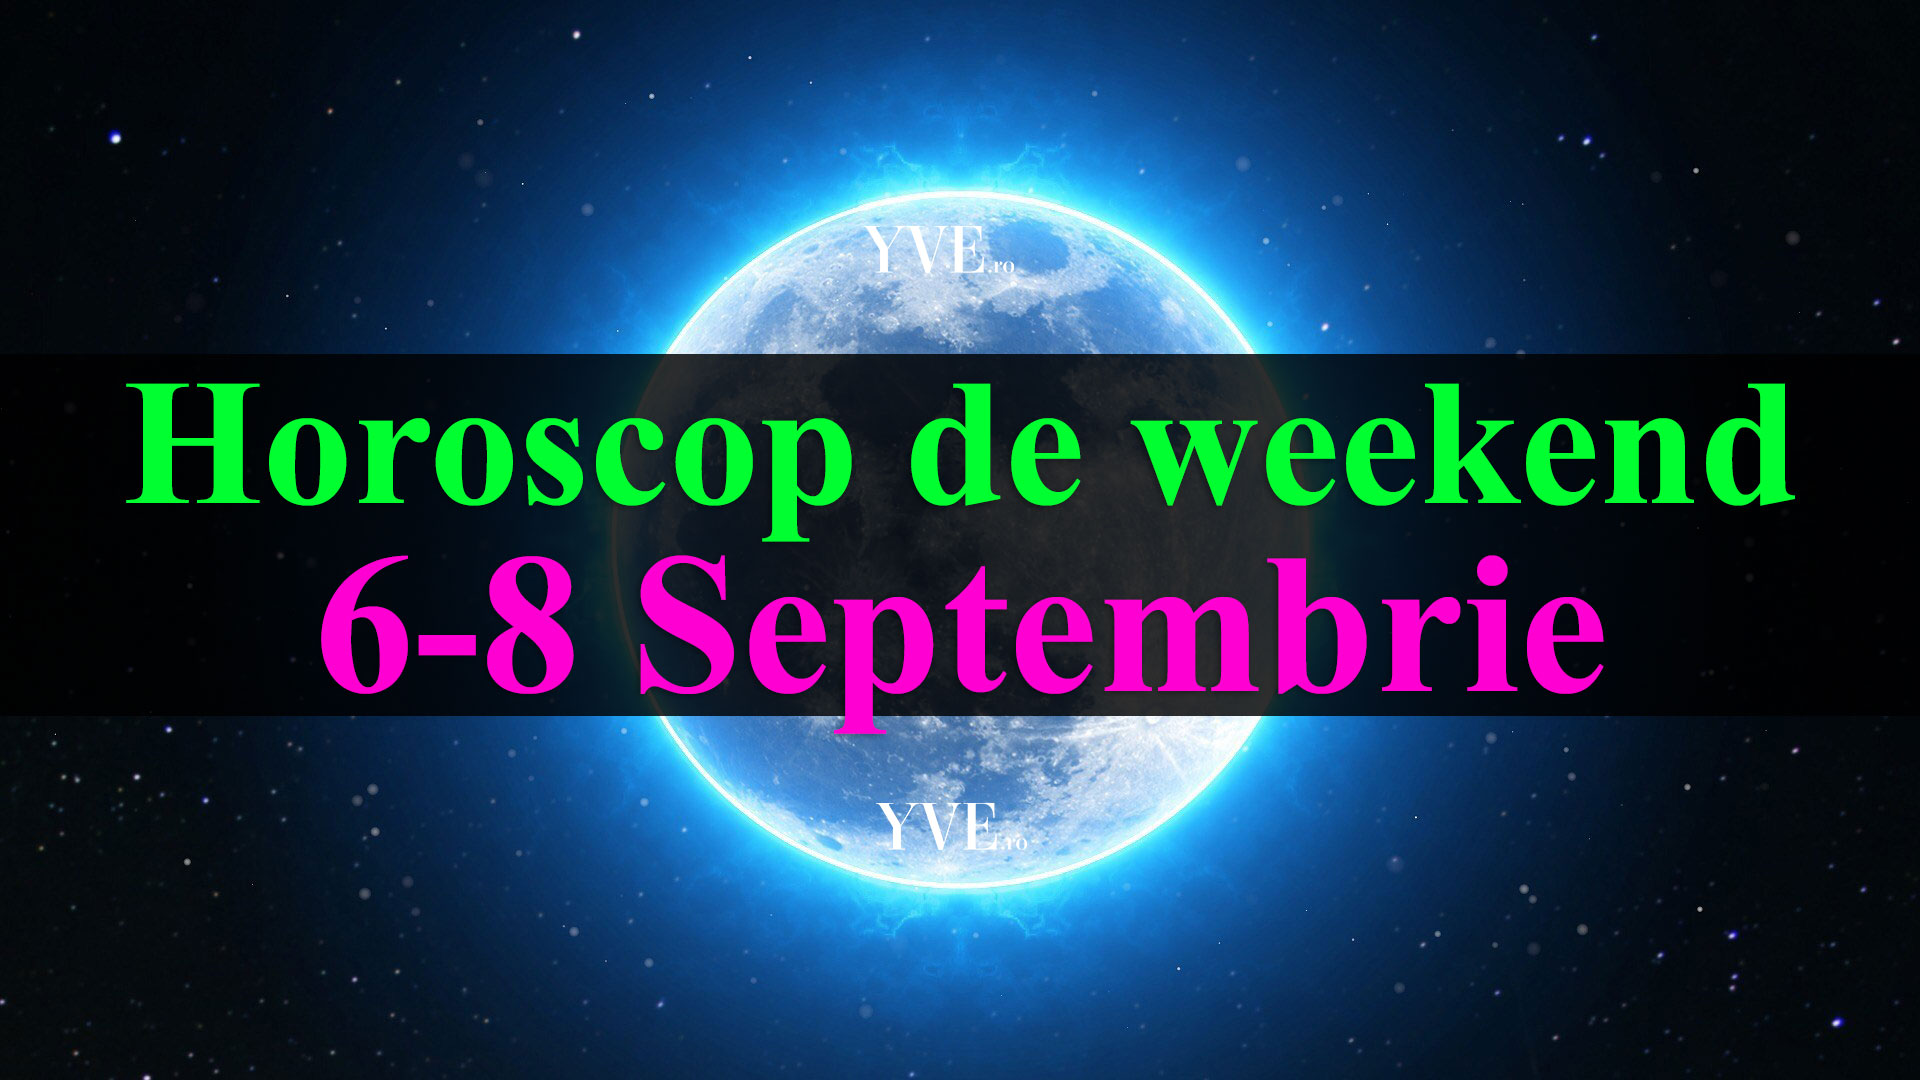 Horoscop de weekend 6-8 Septembrie 2019